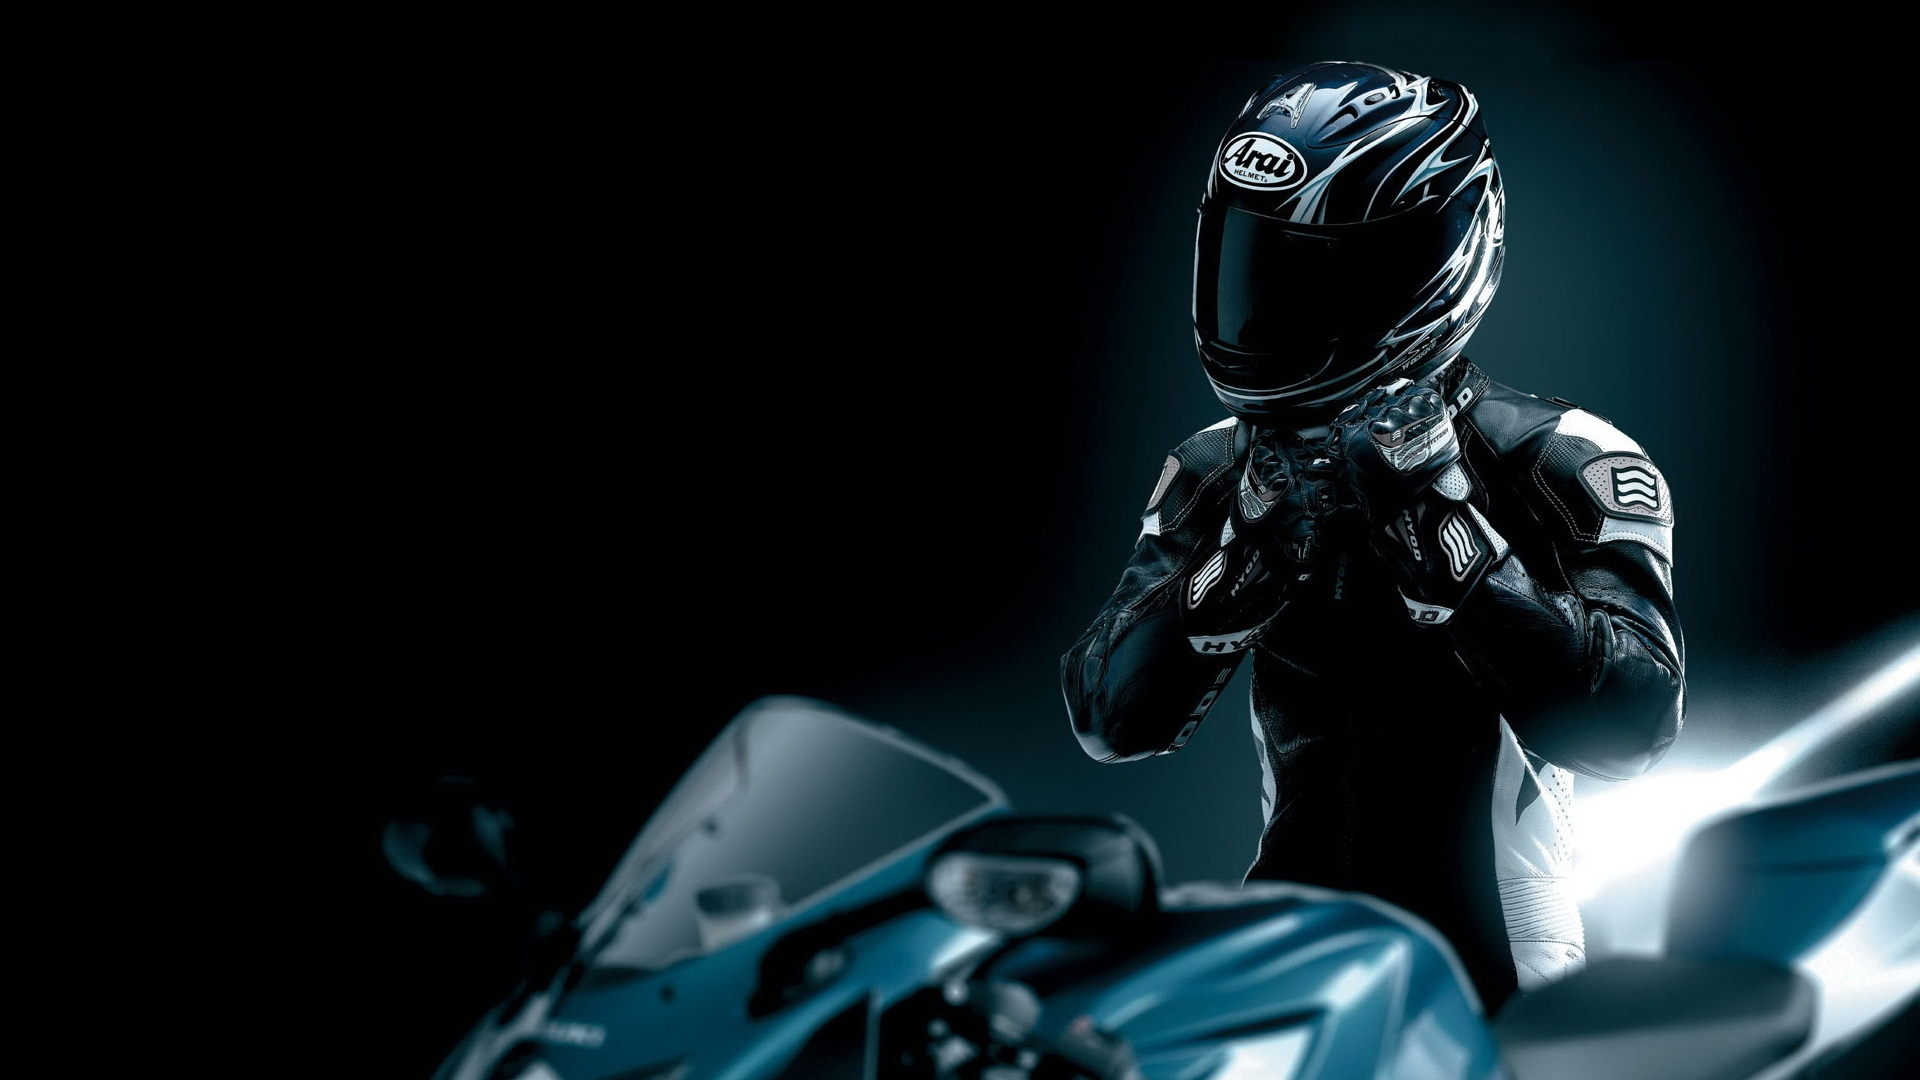 Helmet Arrai Motorcycle Wallpaper Wallpaper